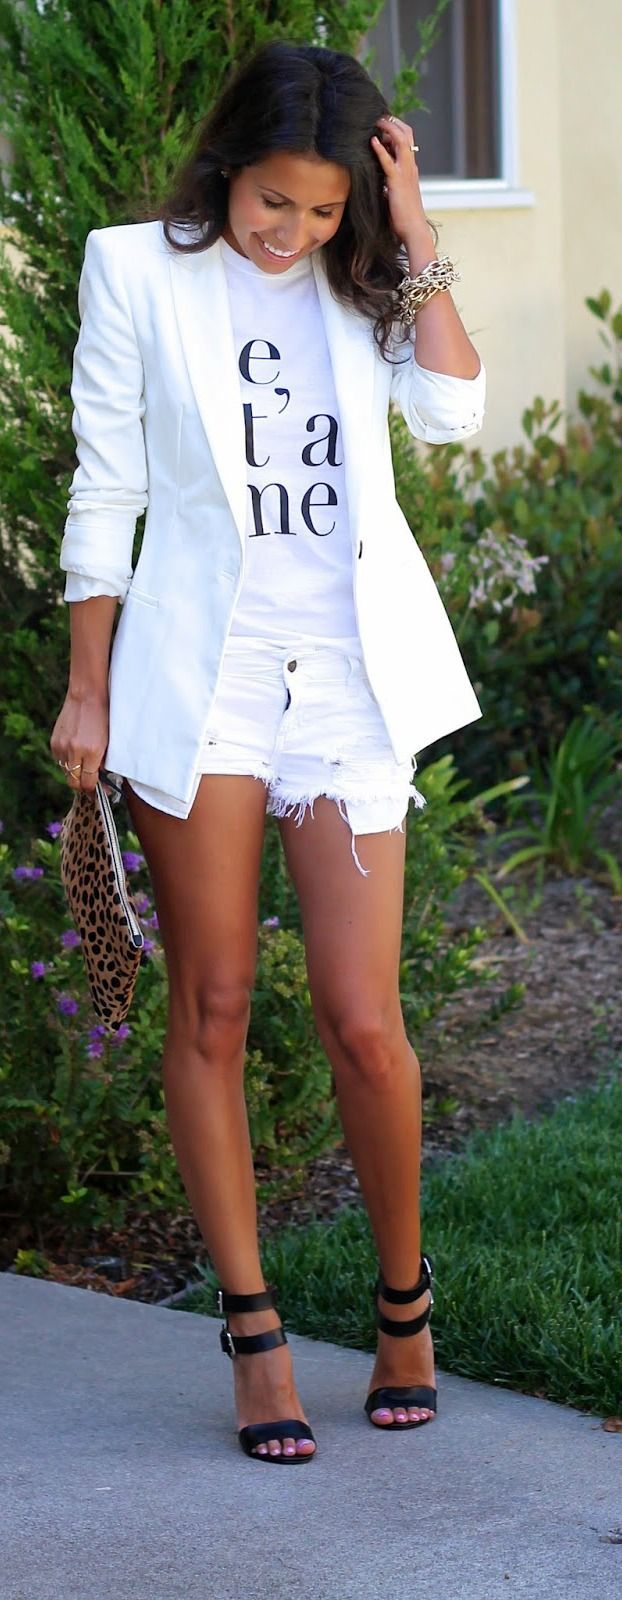 Shop this look on Lookastic: https://lookastic.com/women/looks/blazer-crew-neck-t-shirt-shorts-heeled-sandals-clutch-bracelet/11072 — Gold Bracelet — White and Black Print Crew-neck T-shirt — White Blazer — White Ripped Denim Shorts — Tan Leopard Suede Clutch — Black Leather Heeled Sandals